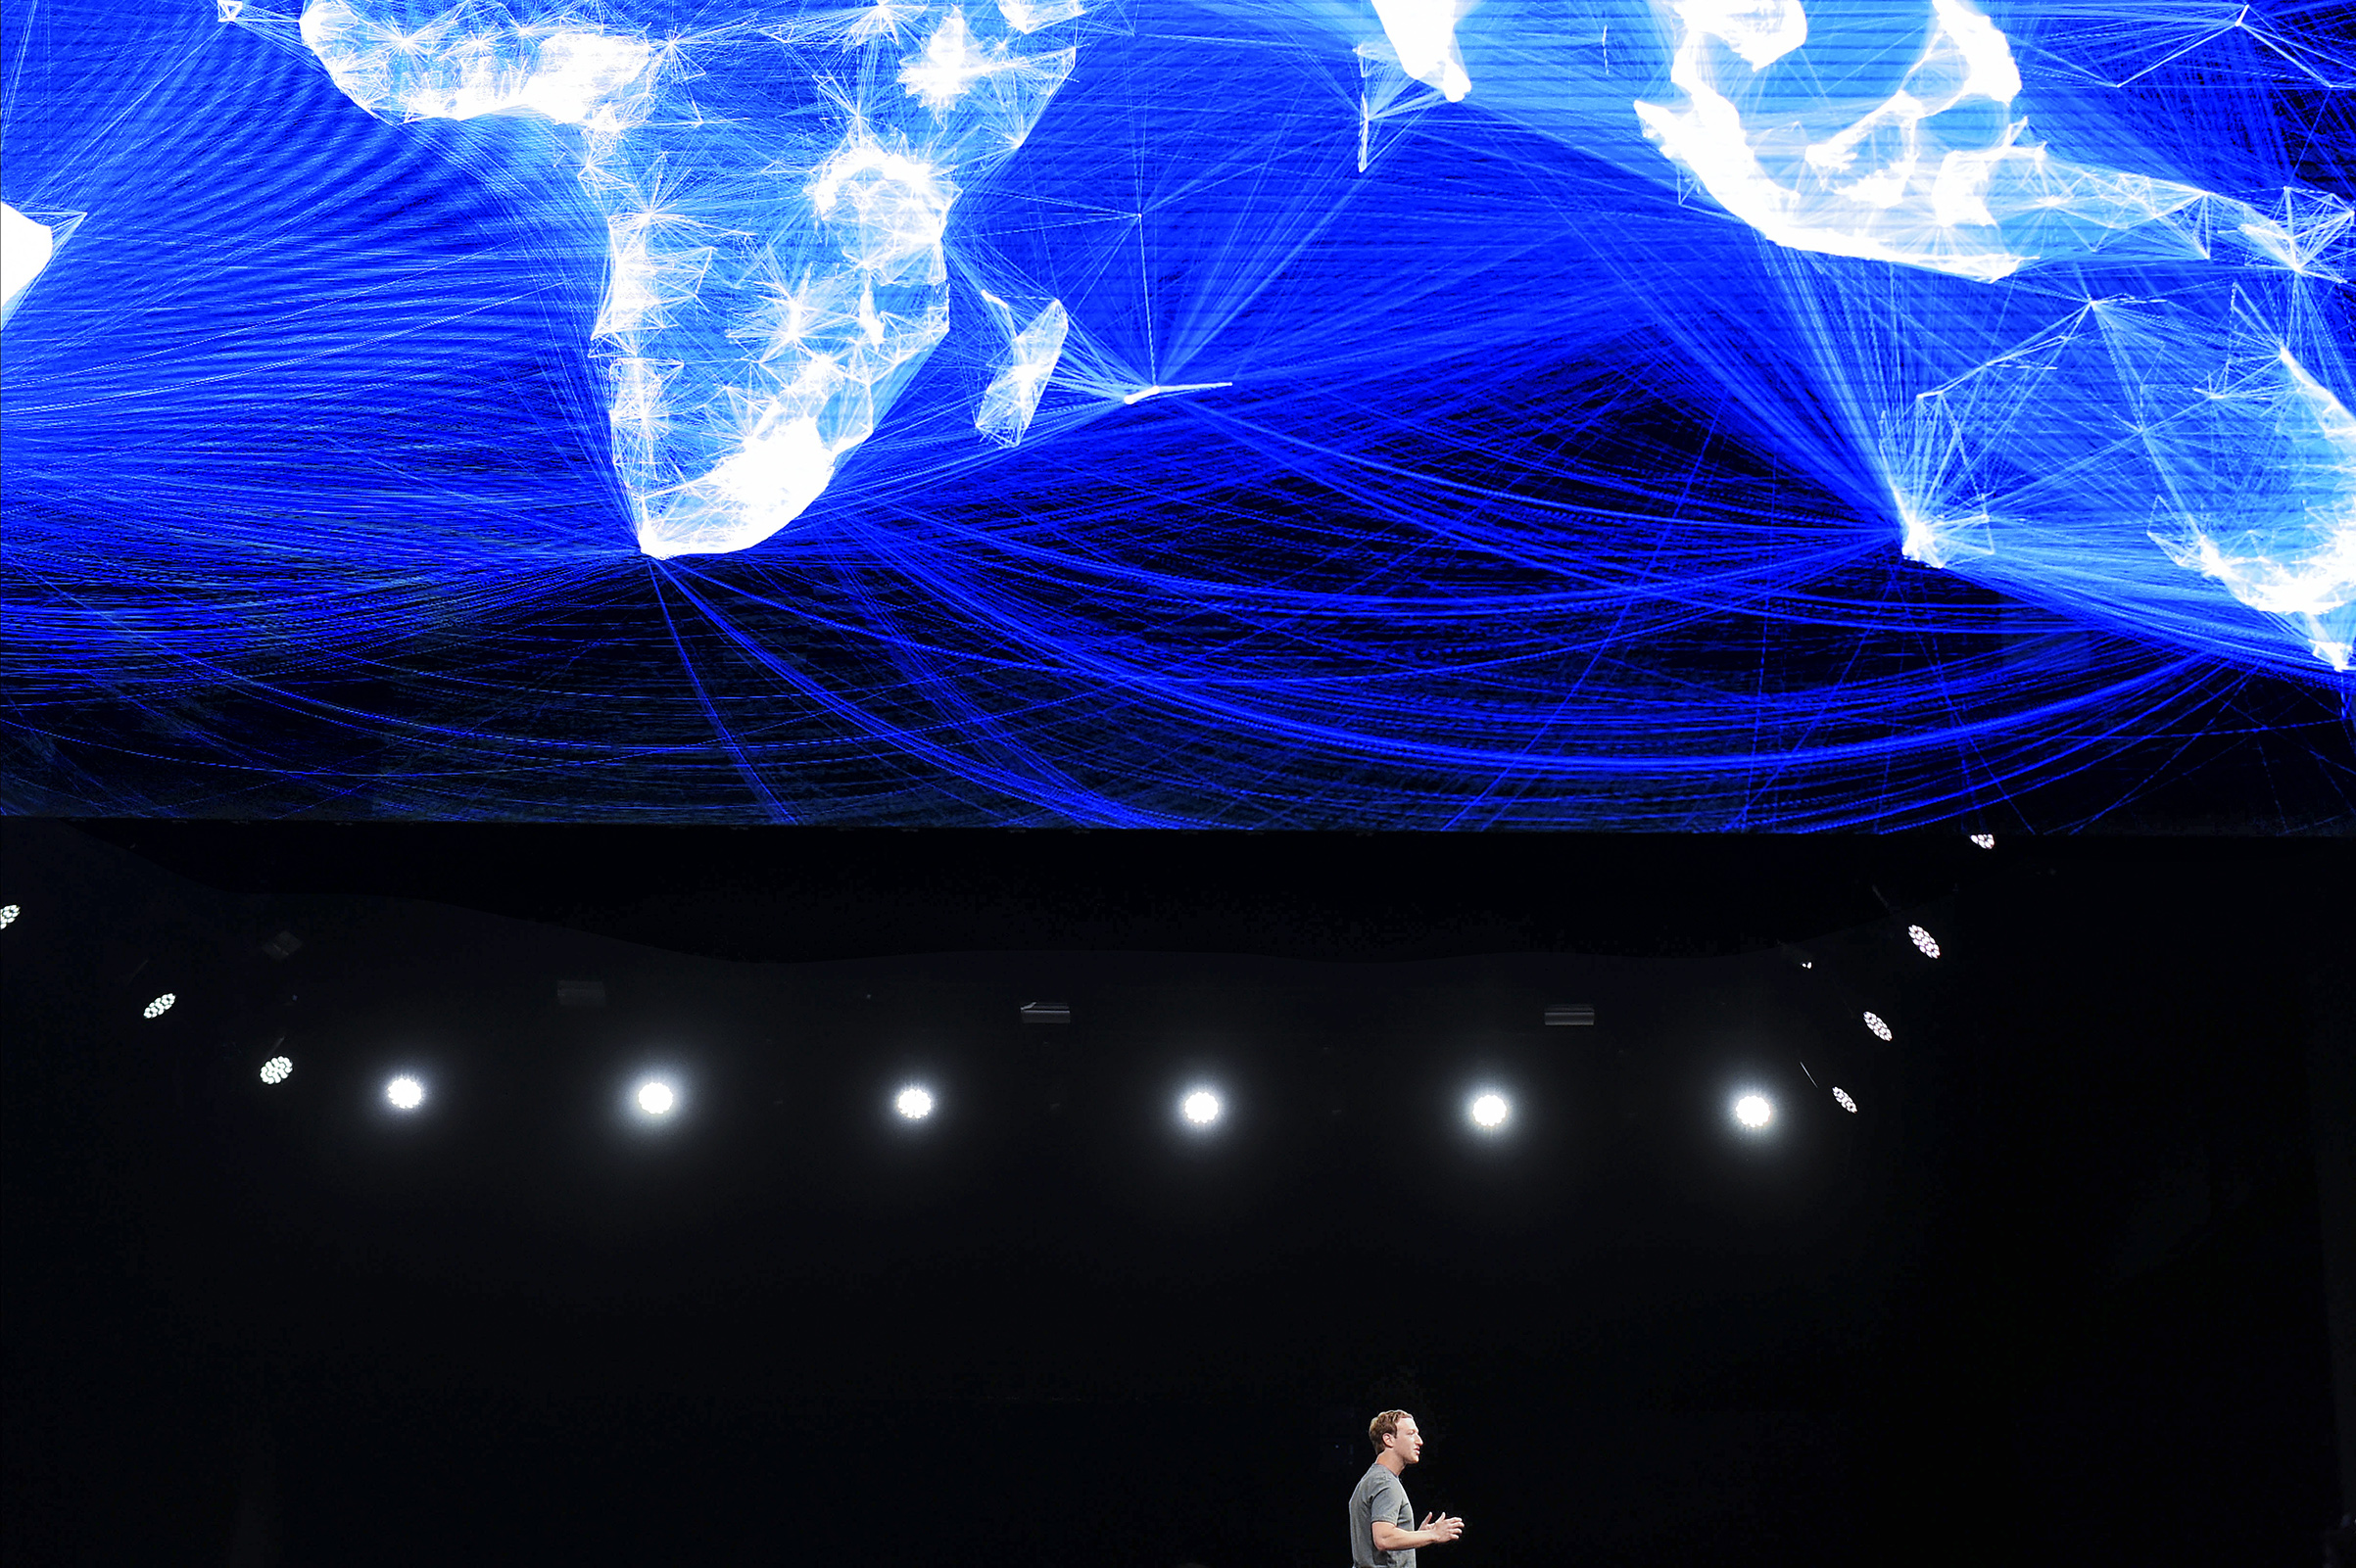 Facebook founder and CEO Mark Zuckerberg speaks during a presentation on Feb. 21, 2016, in Barcelona